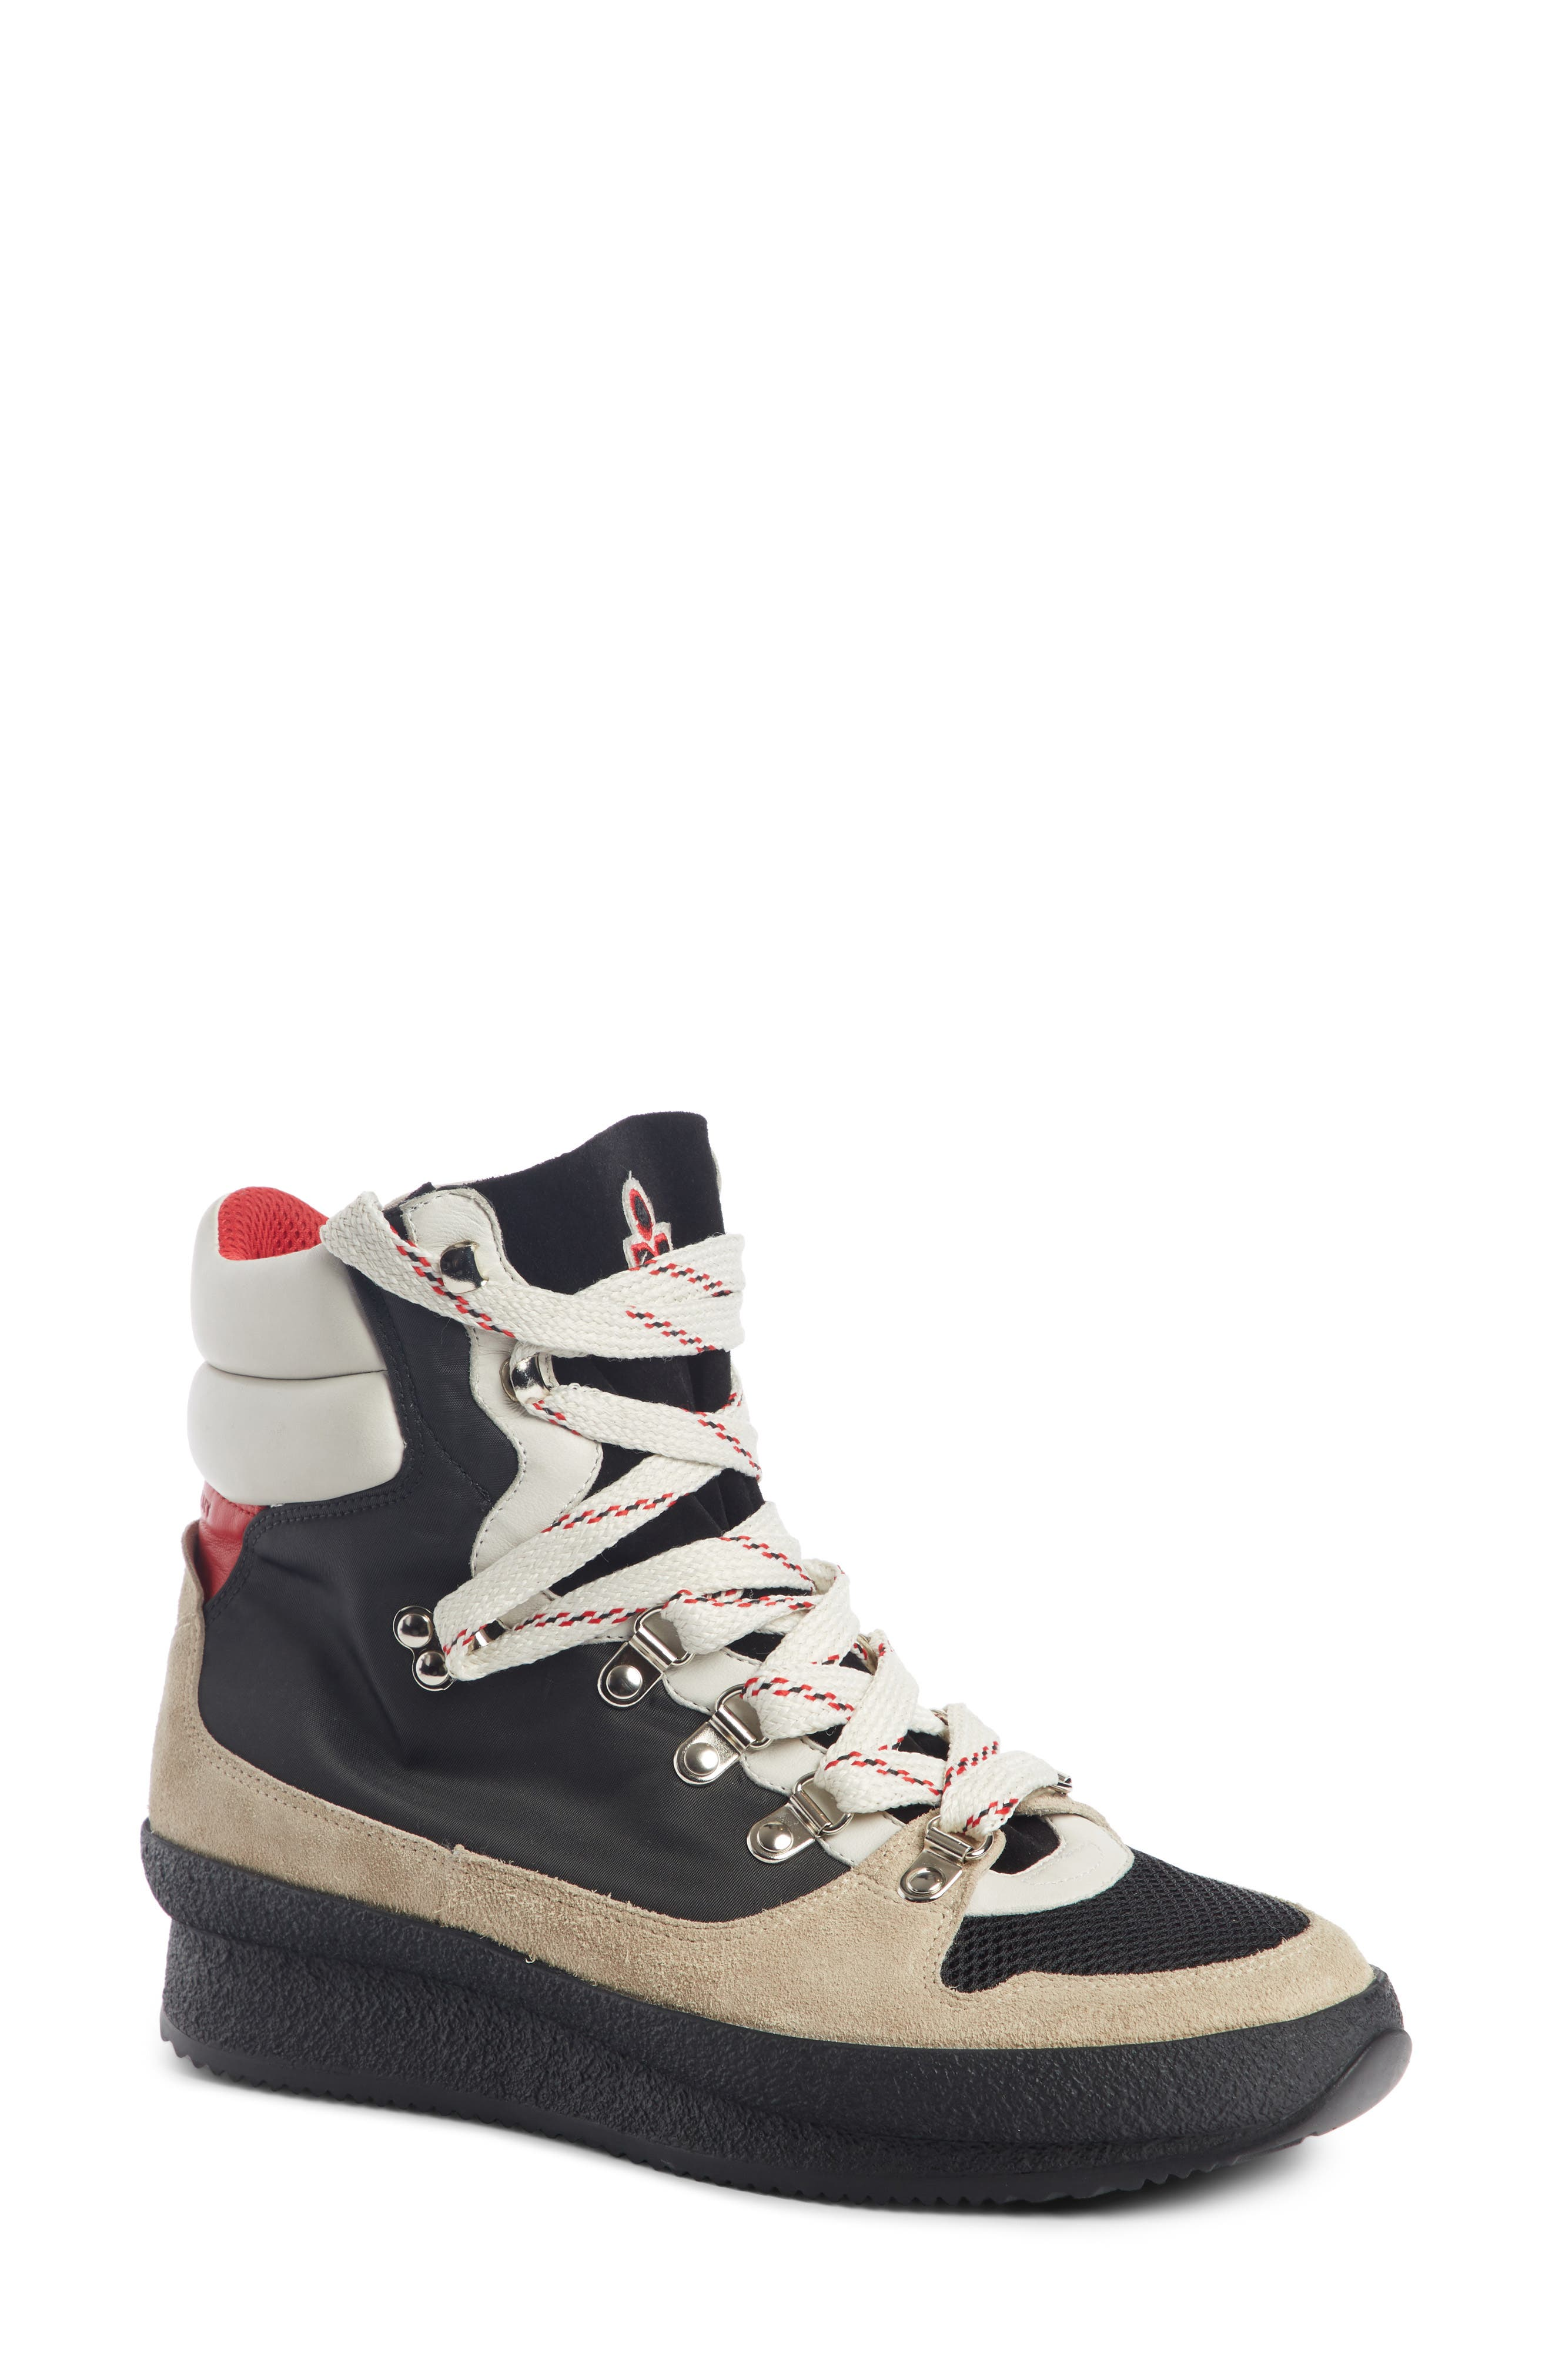 Isabel Marant Brendta High Top Sneaker Boot (Women)